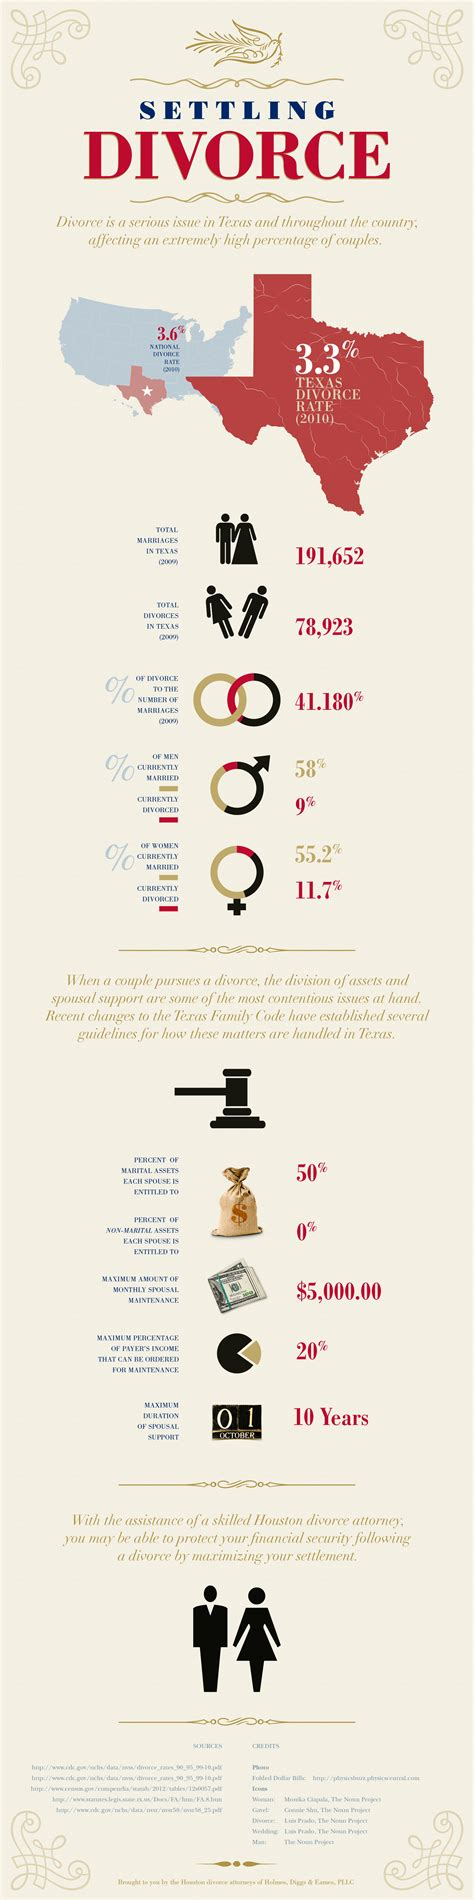 texas divorce facts texas divorce source settling divorce infographic infographic list